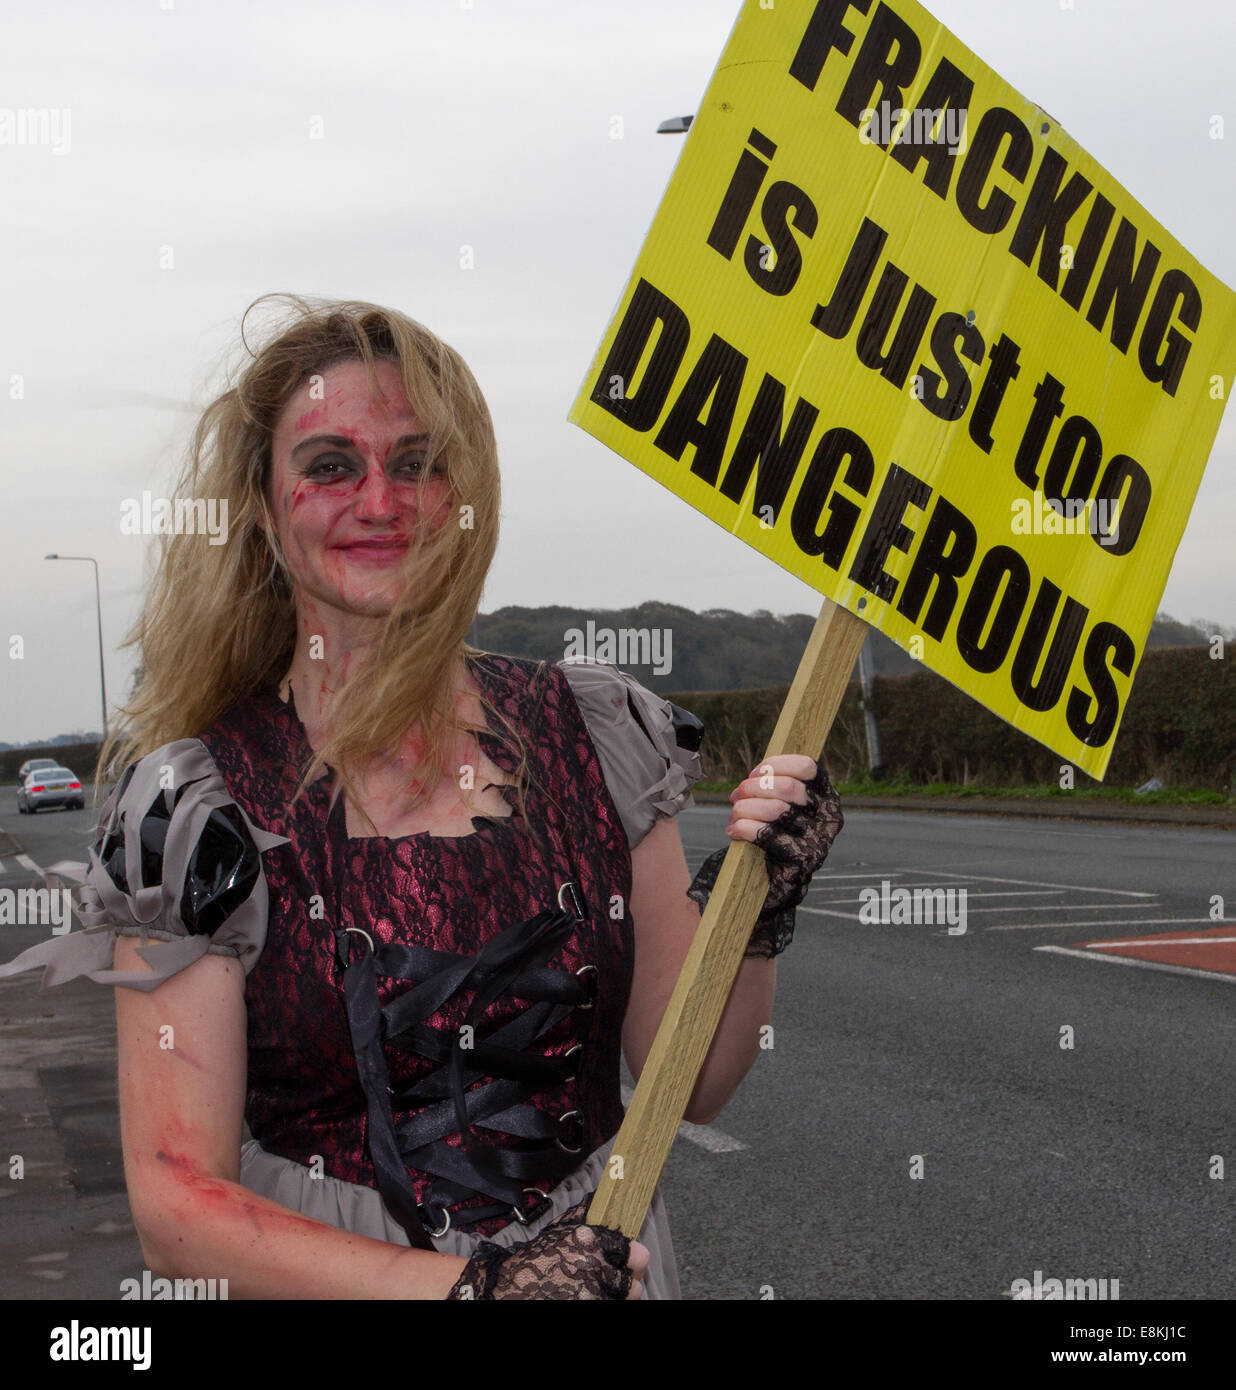 Westby Nr Blackpool, Lancashire 31st October, 2014. Local Residents opposed to proposed fracking demonstrate in - Stock Image